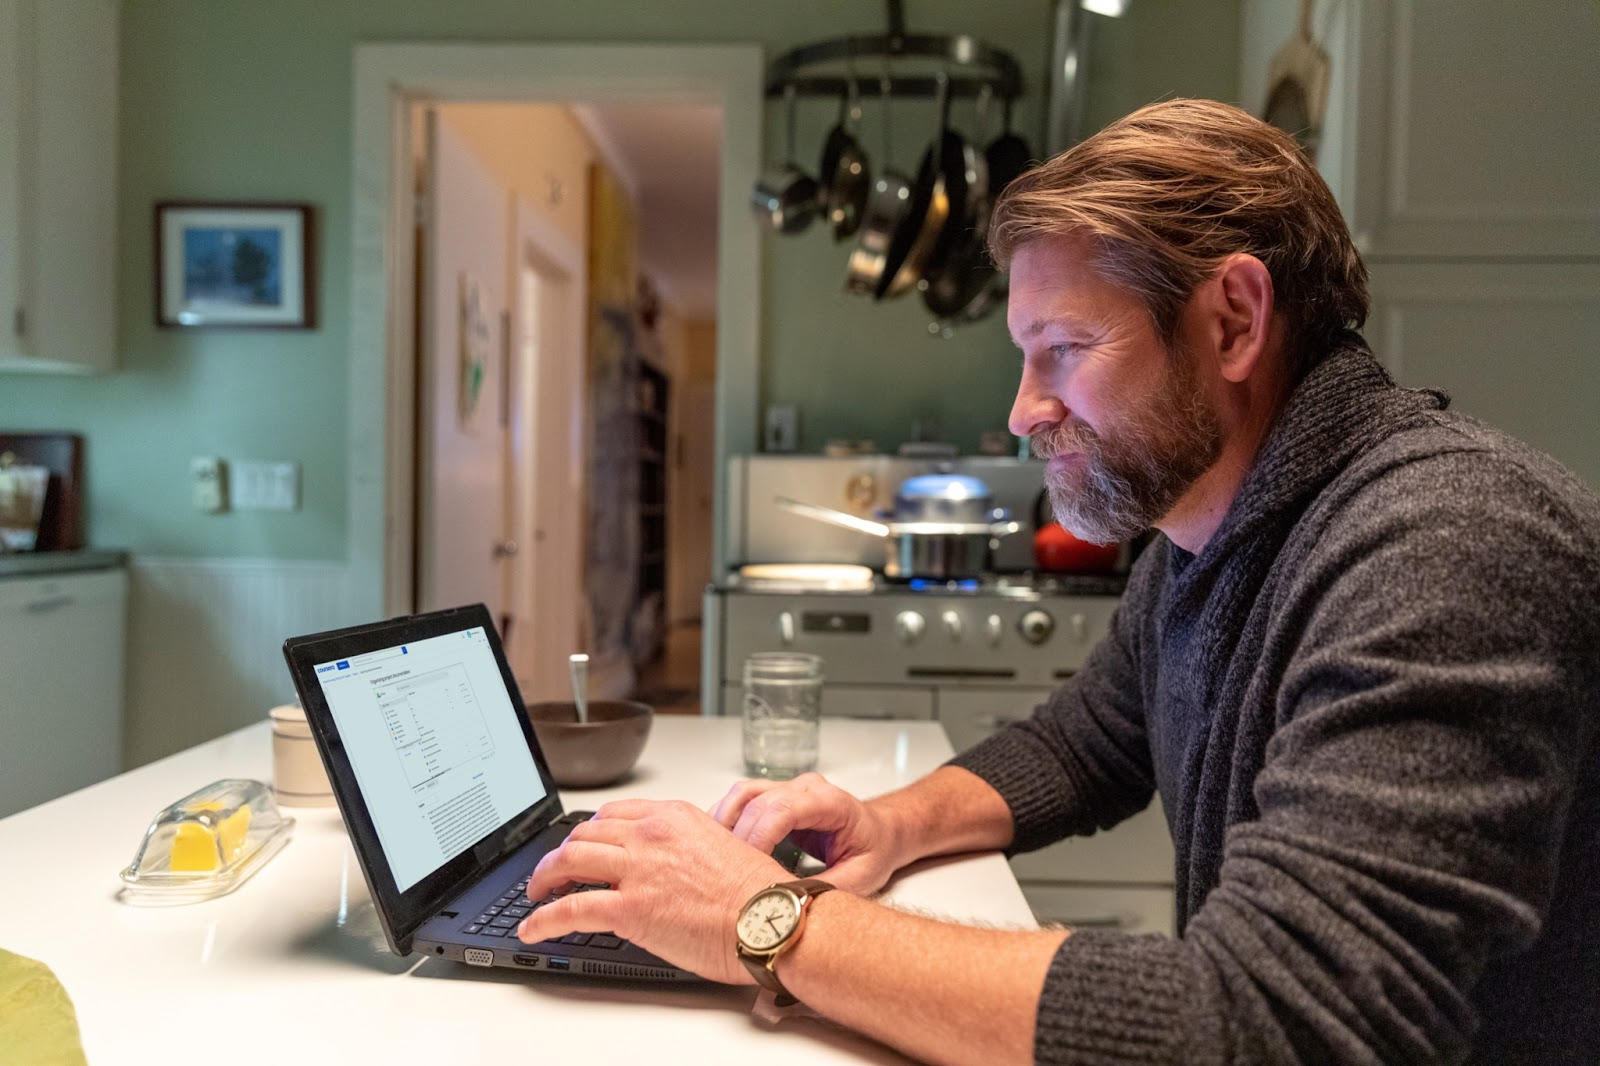 A student reviews online course material on a laptop from at their kitchen table.